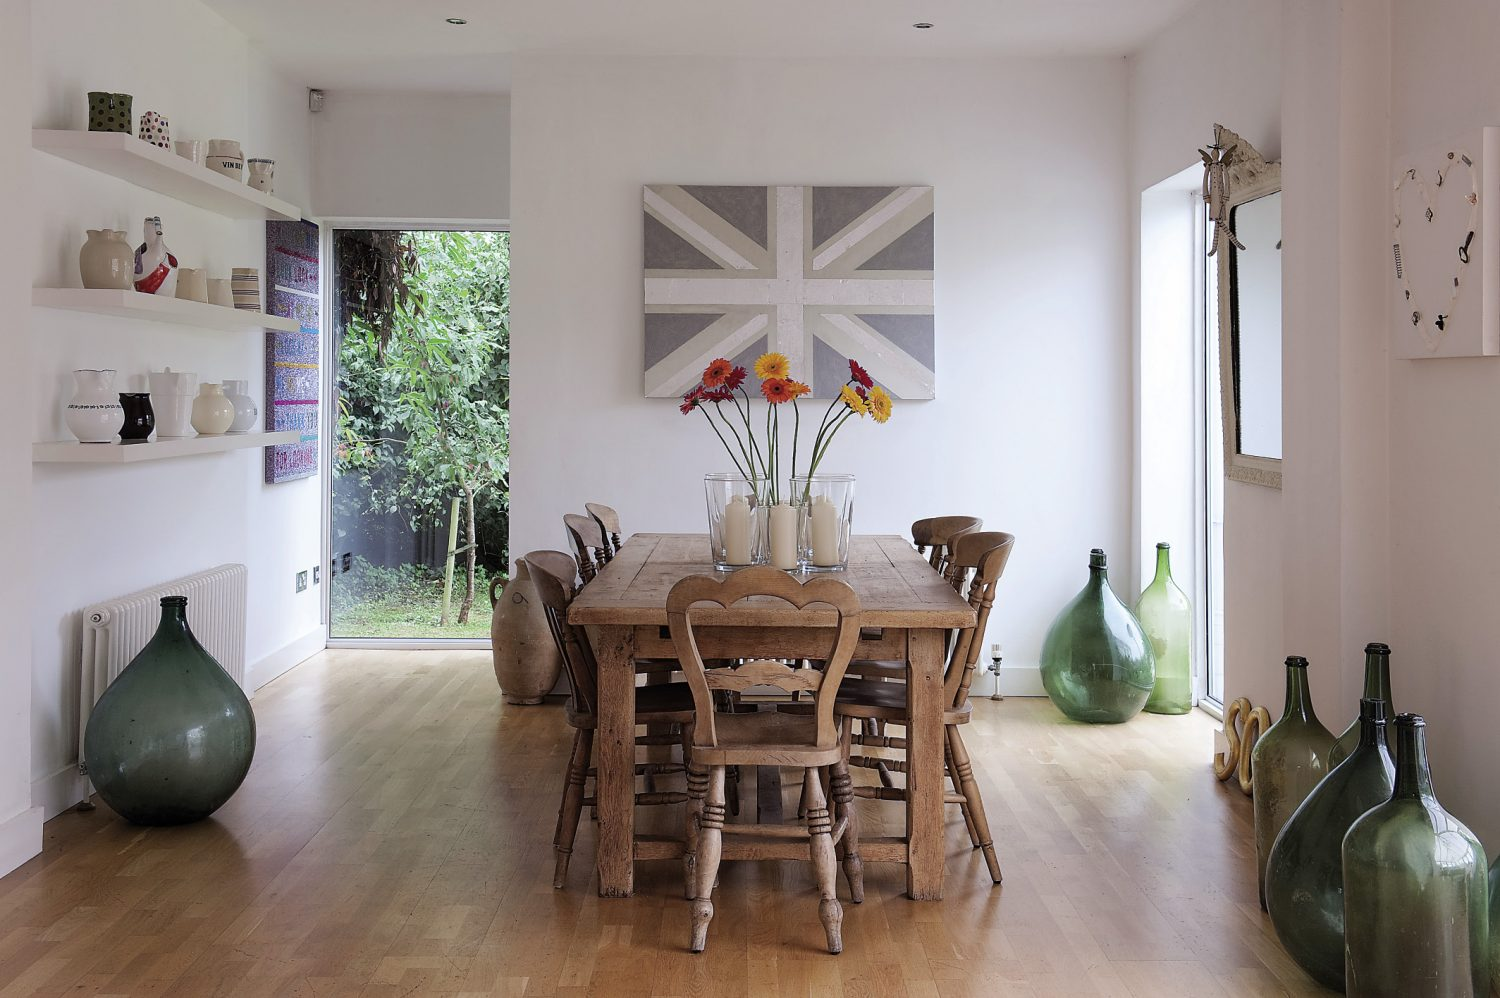 The light oak floor of the kitchen extends uniformly through the house and contributes, along with the white walls, to the overall feel of light and space. On the opposite wall to the kitchen, at the other end of the kitchen-dining space, is a fun, silver leaf Union Jack